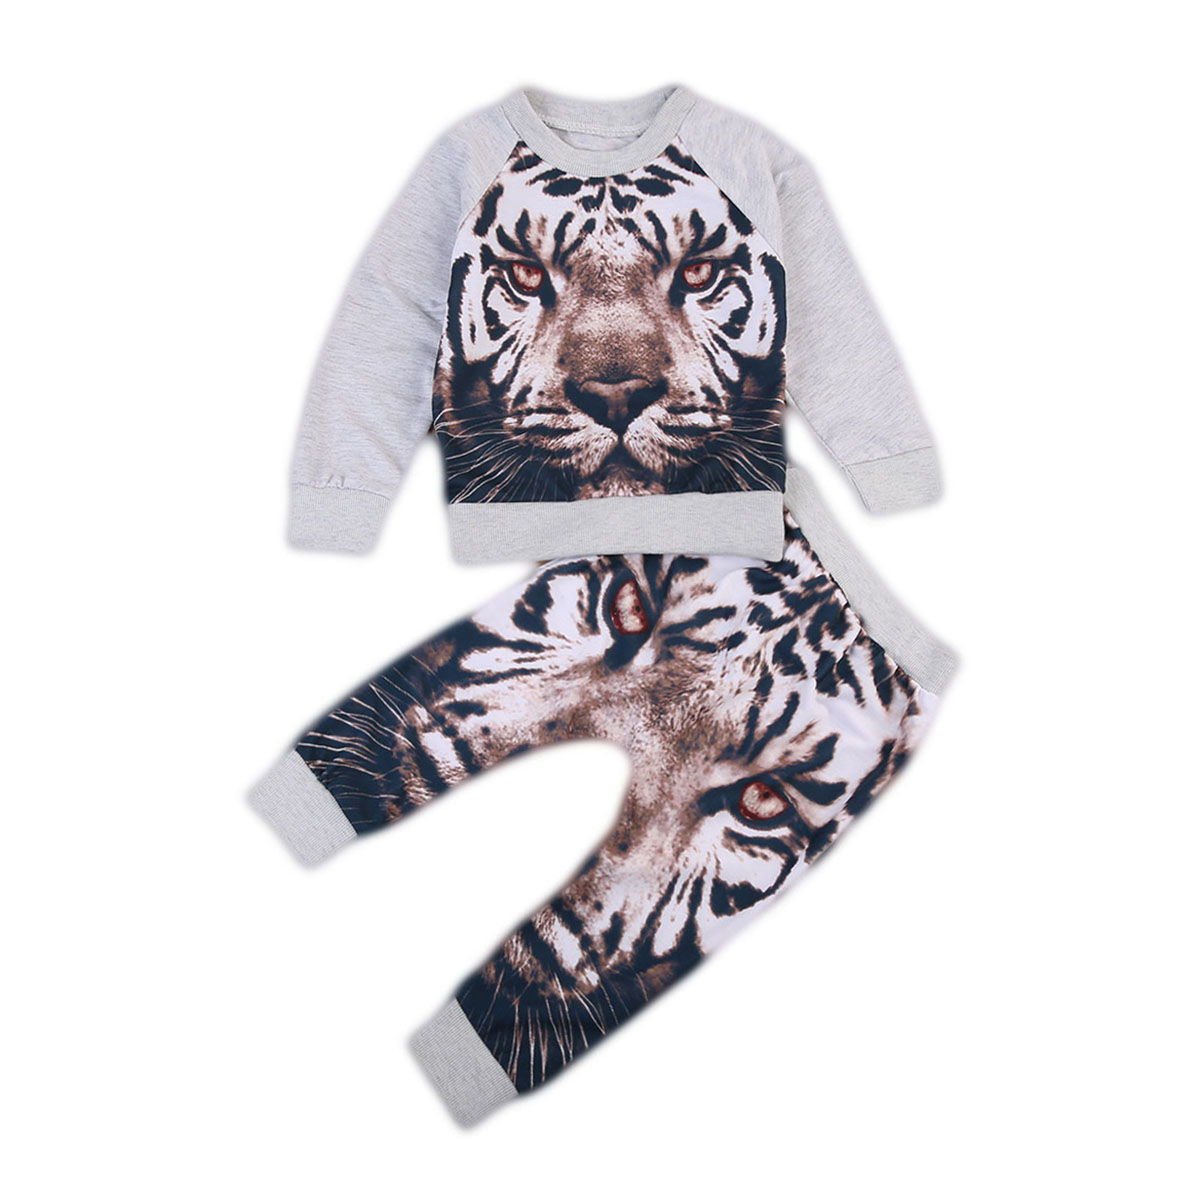 Baby Boy Clothes Set 2017 New Autumn Spring Long Sleeve Tiger Print Costume Outfits Clothes T-shirt Tops+ Long Pants 2pcs Set baby boy clothes set elephant print short sleeve tops striped long pants